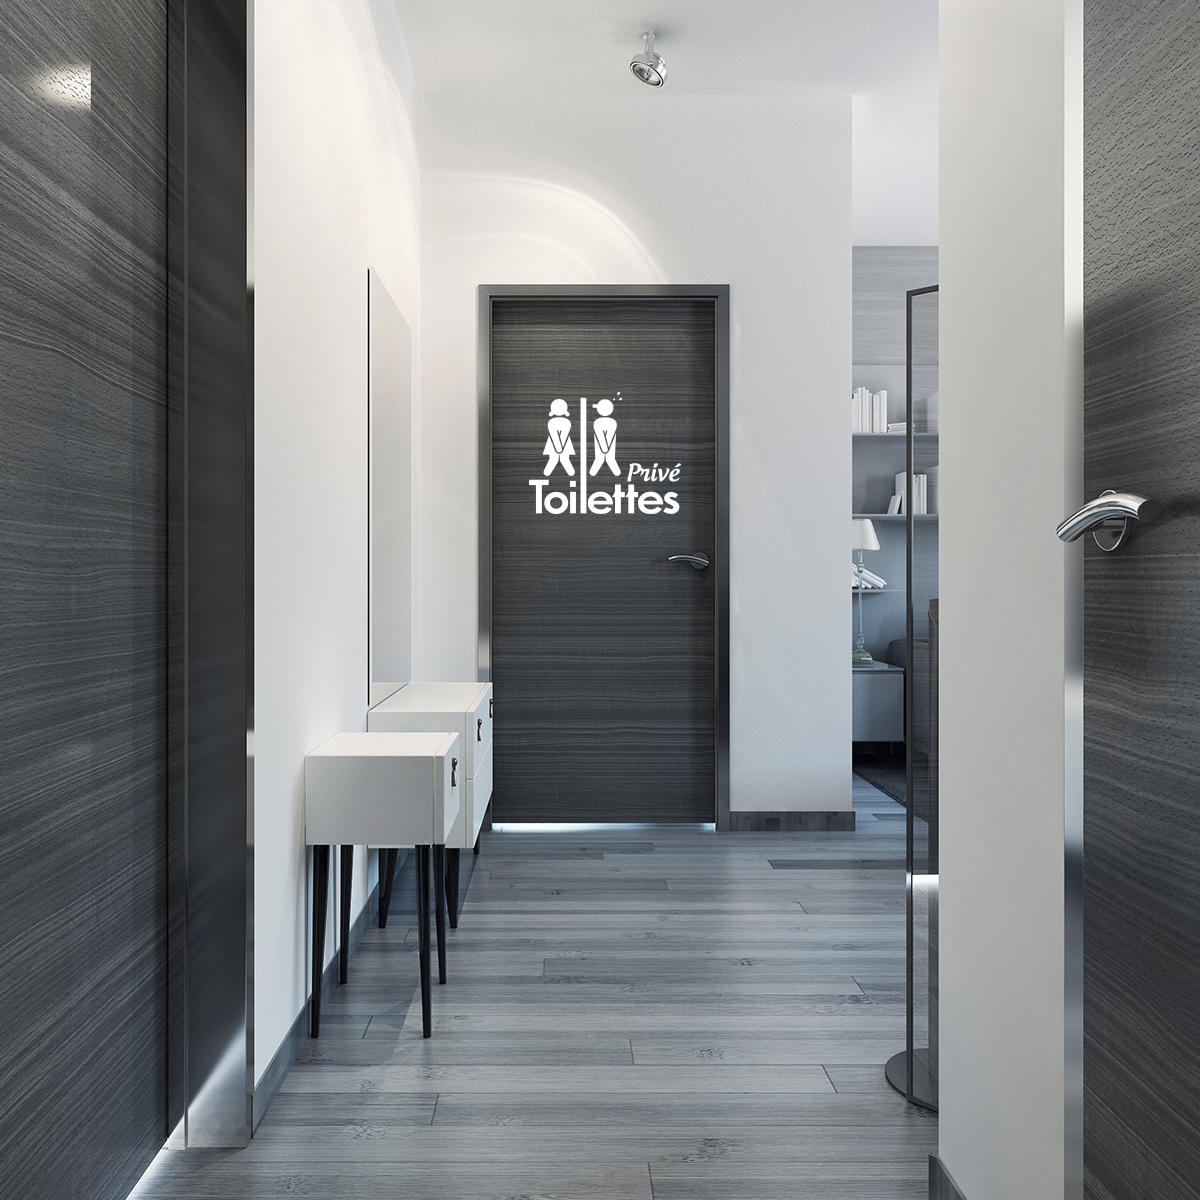 Sticker Porte Toilettes Priv Stickers Toilettes Porte